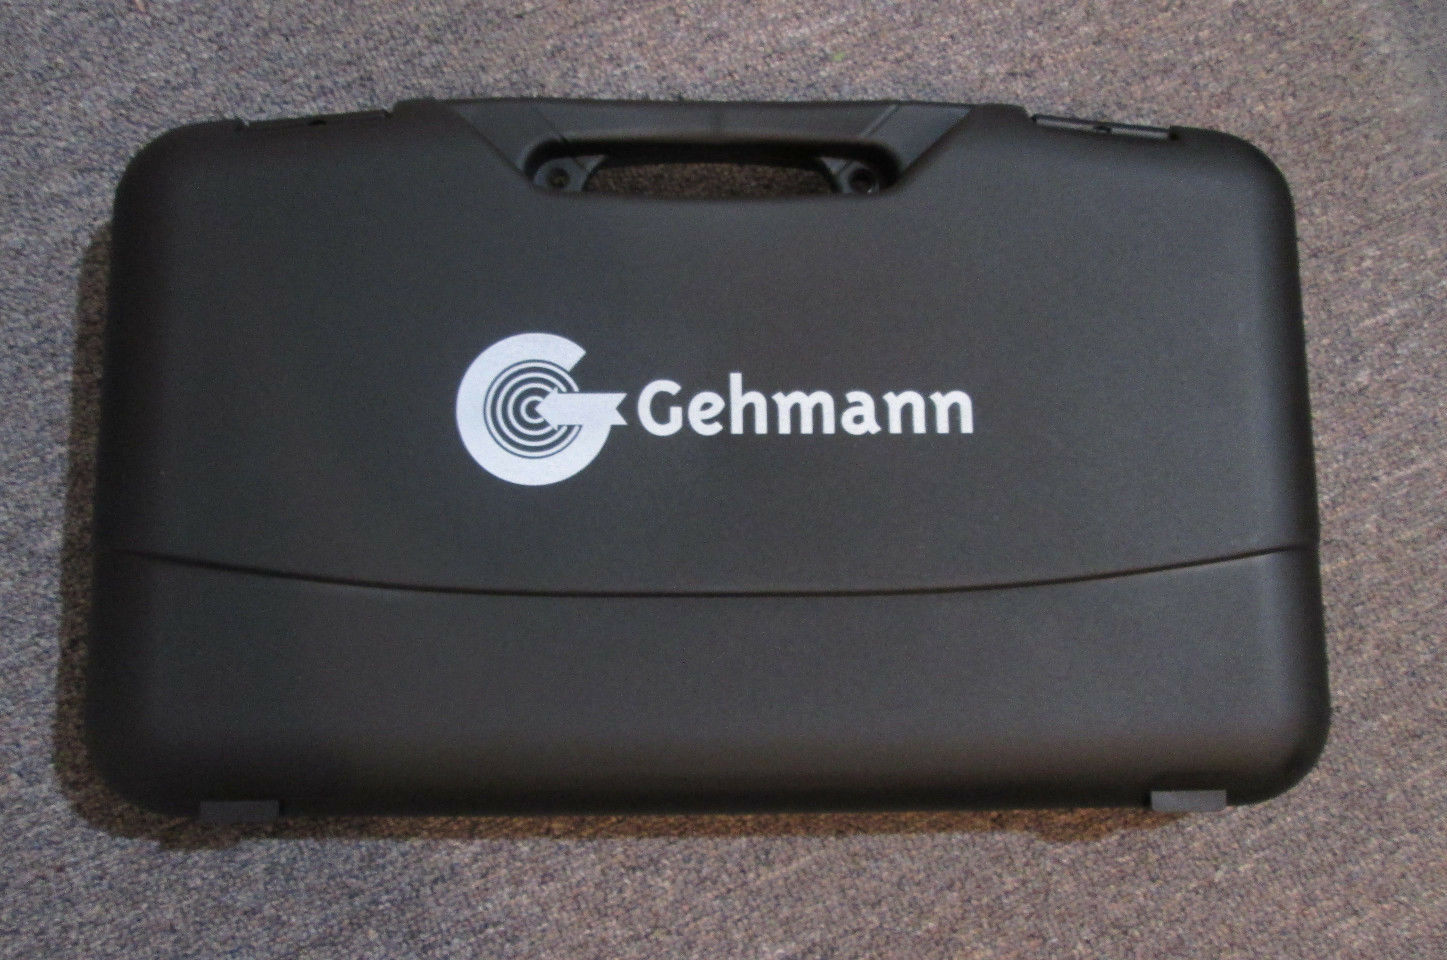 Gehmann  987 Plastic carrying case